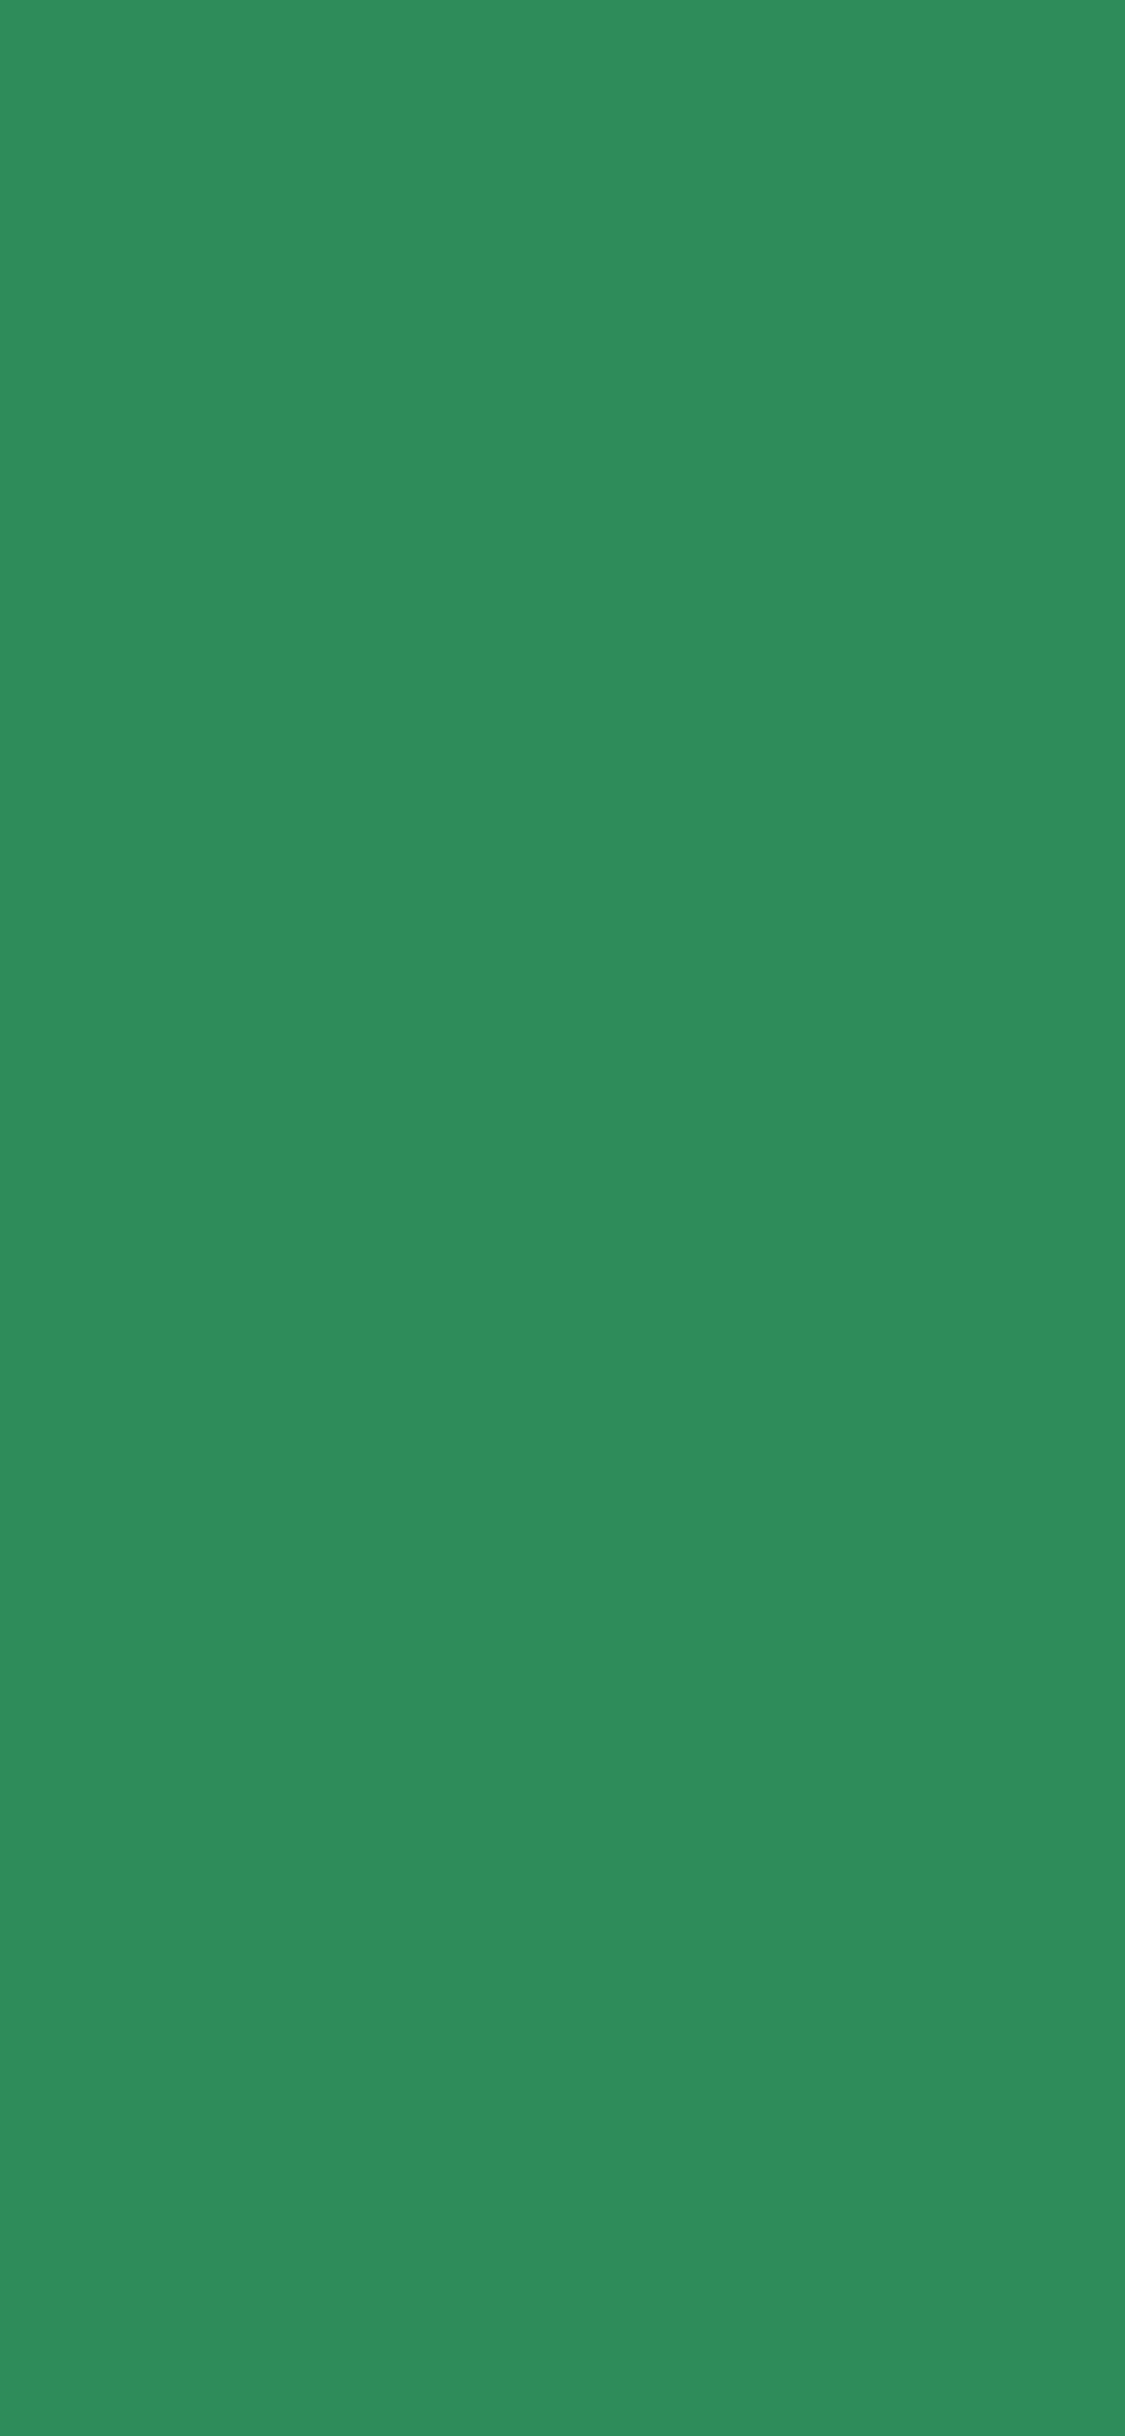 1125x2436 Sea Green Solid Color Background